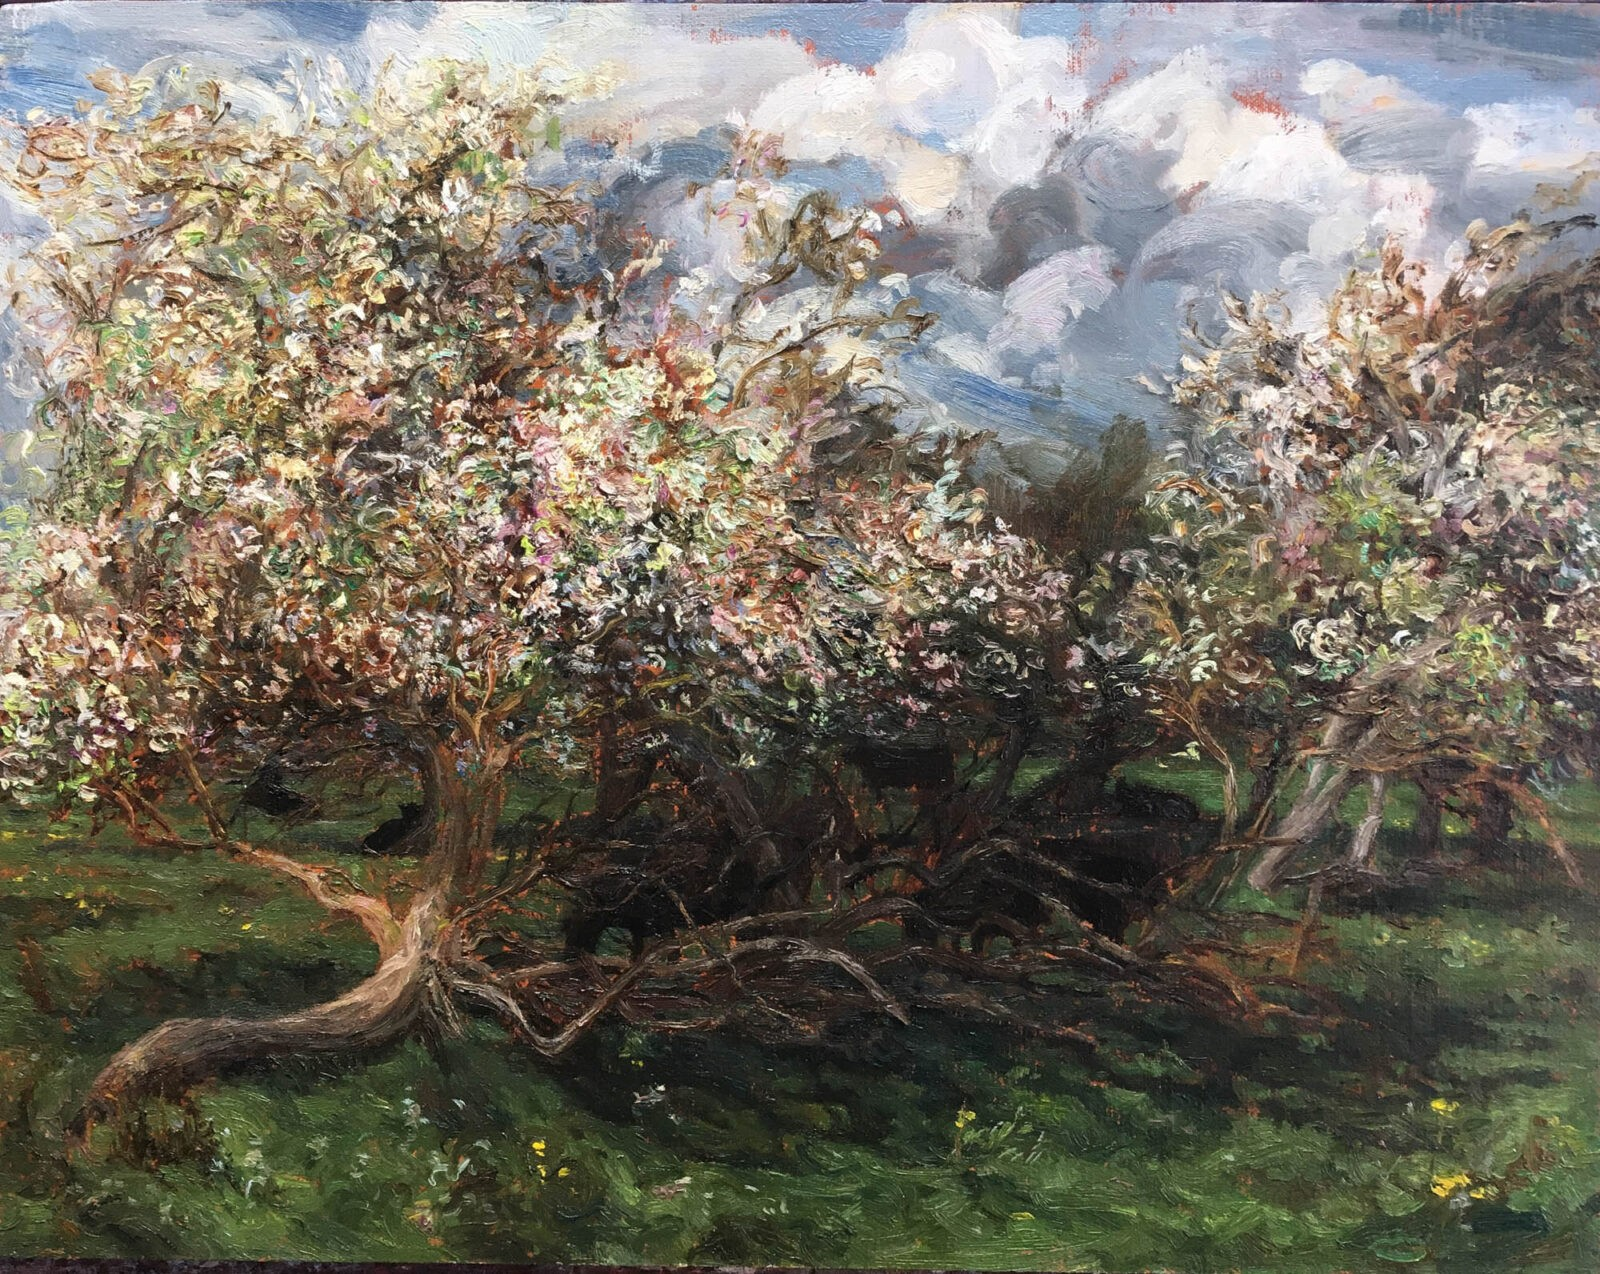 Liza Visagie - Spring Orchard. Oil on Linen 12 x 16 inches